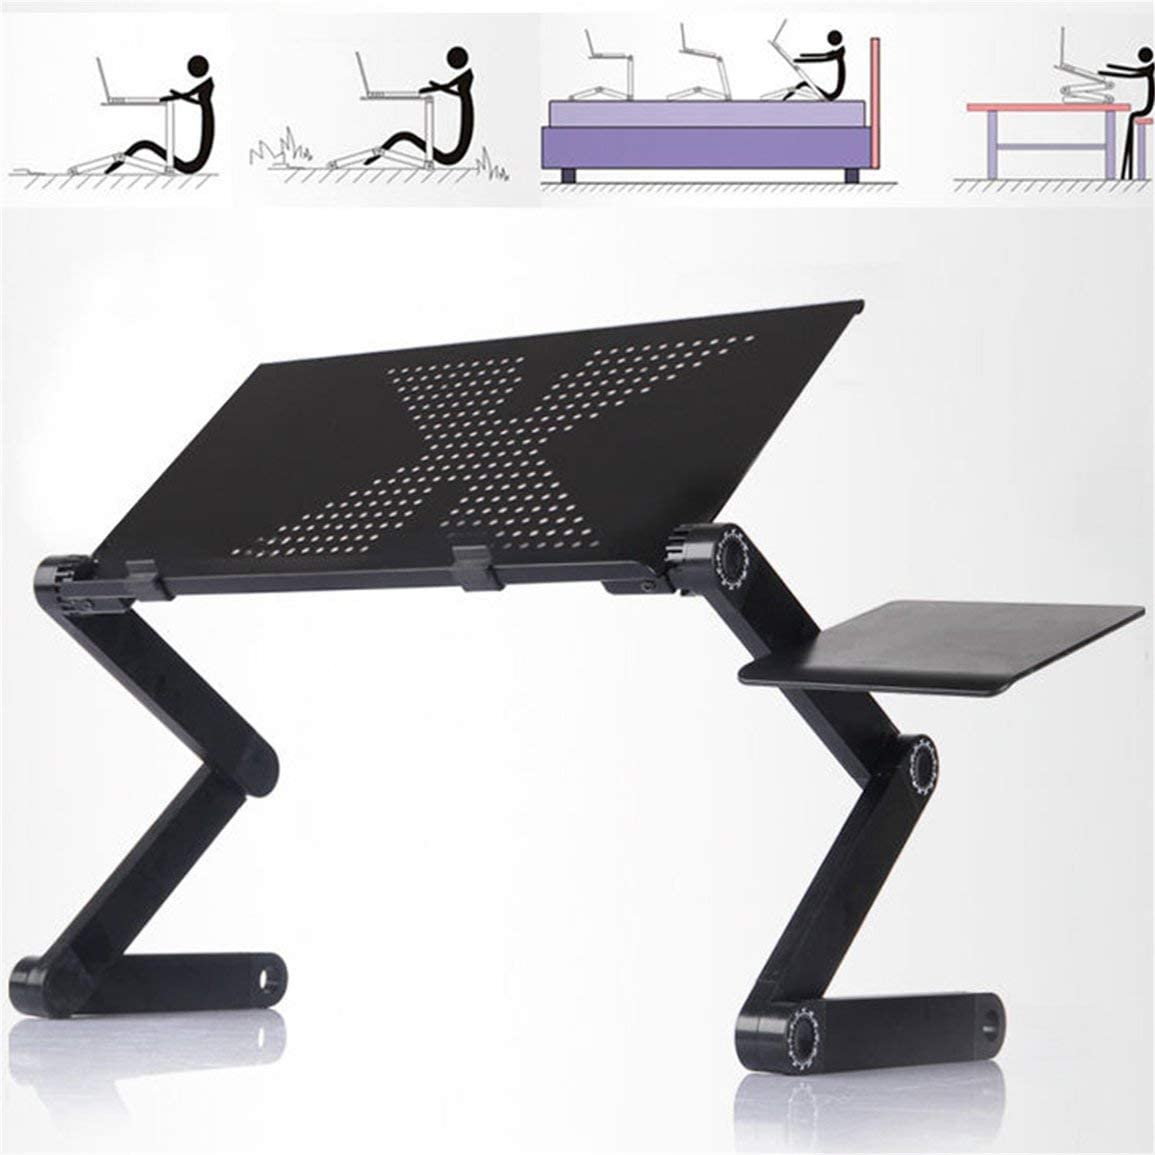 table 0.48m Portable Foldable Aluminum Alloy Laptop Computer Notebook Table Stand Desk Bed Tray Enjoy Fun in bed carpet lawn ➤ HibiscusElla sofa